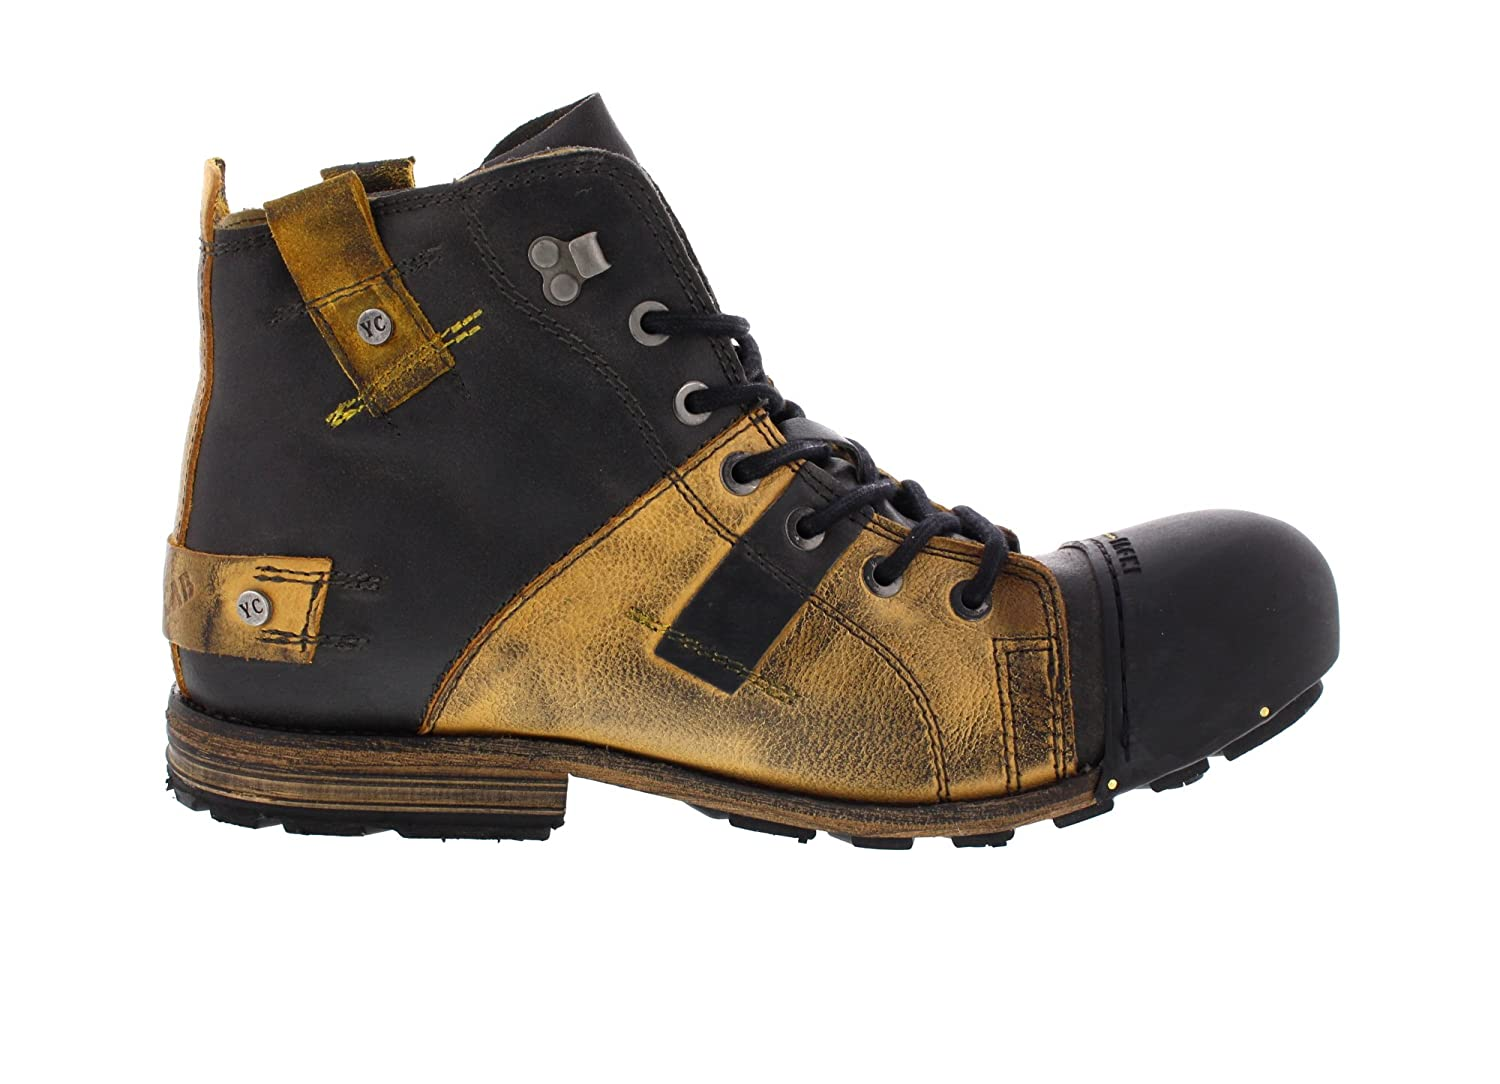 Yellow Cab Boots Industrial 15012 - Light Blue, Tamaño:45